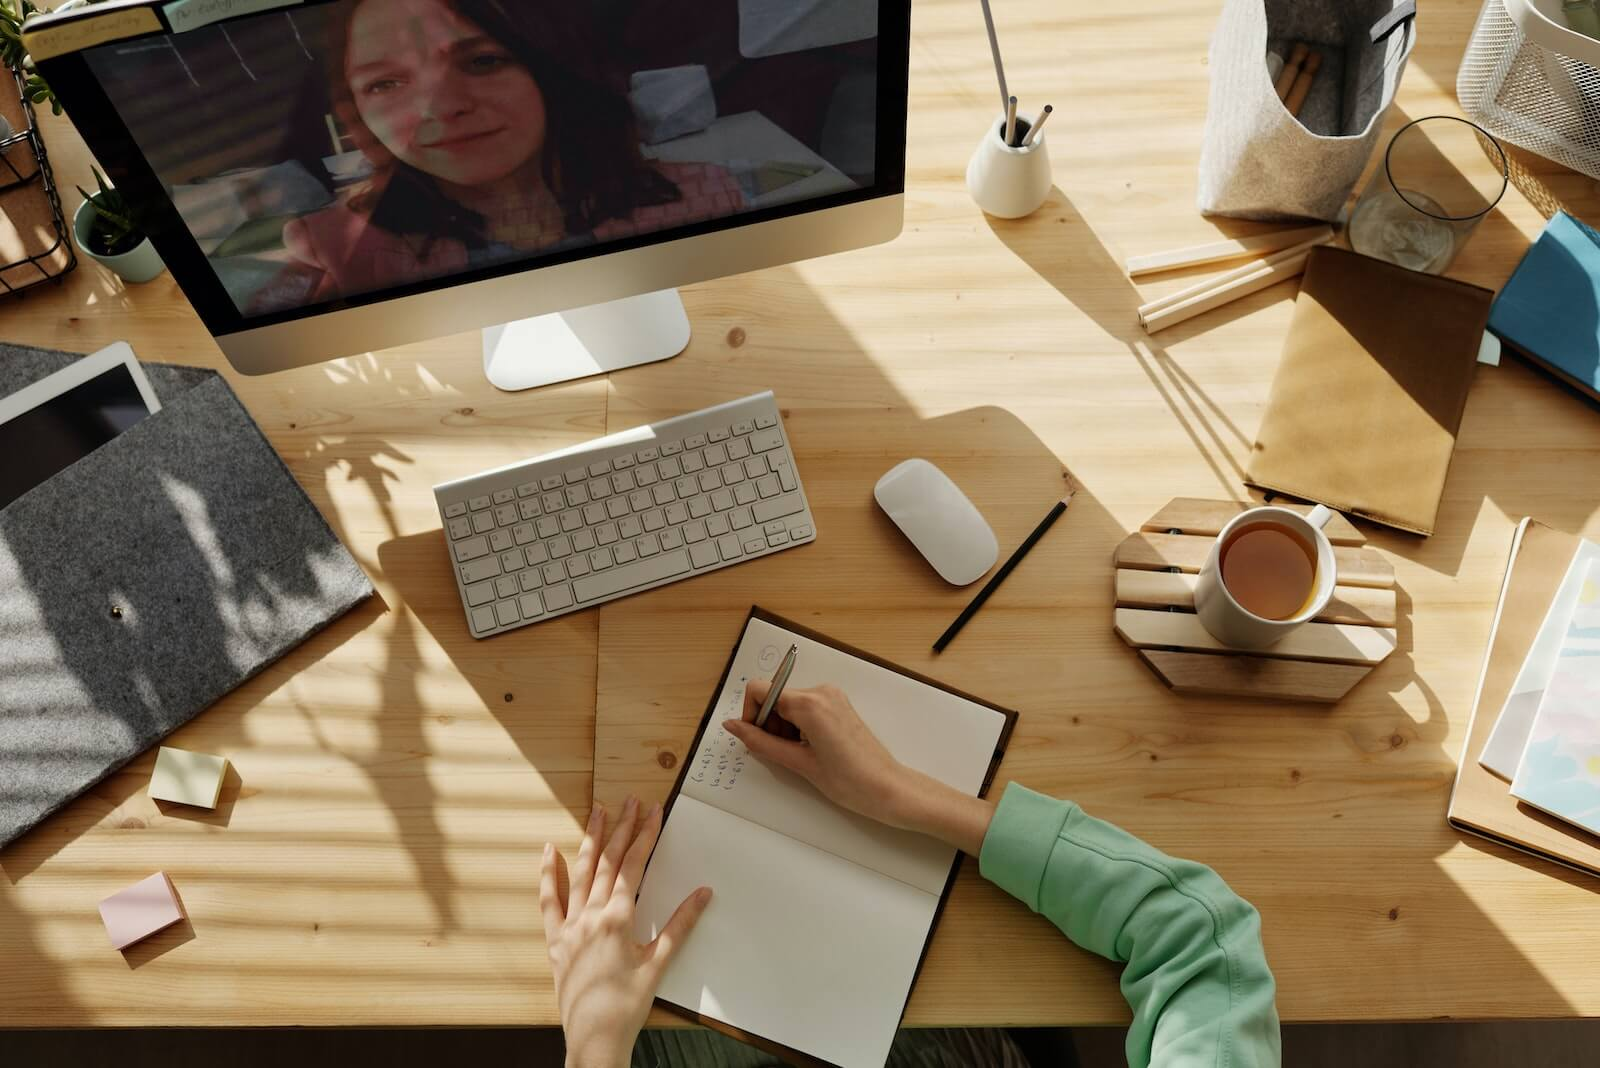 person writing in a notebook on a table while on a video call with a woman